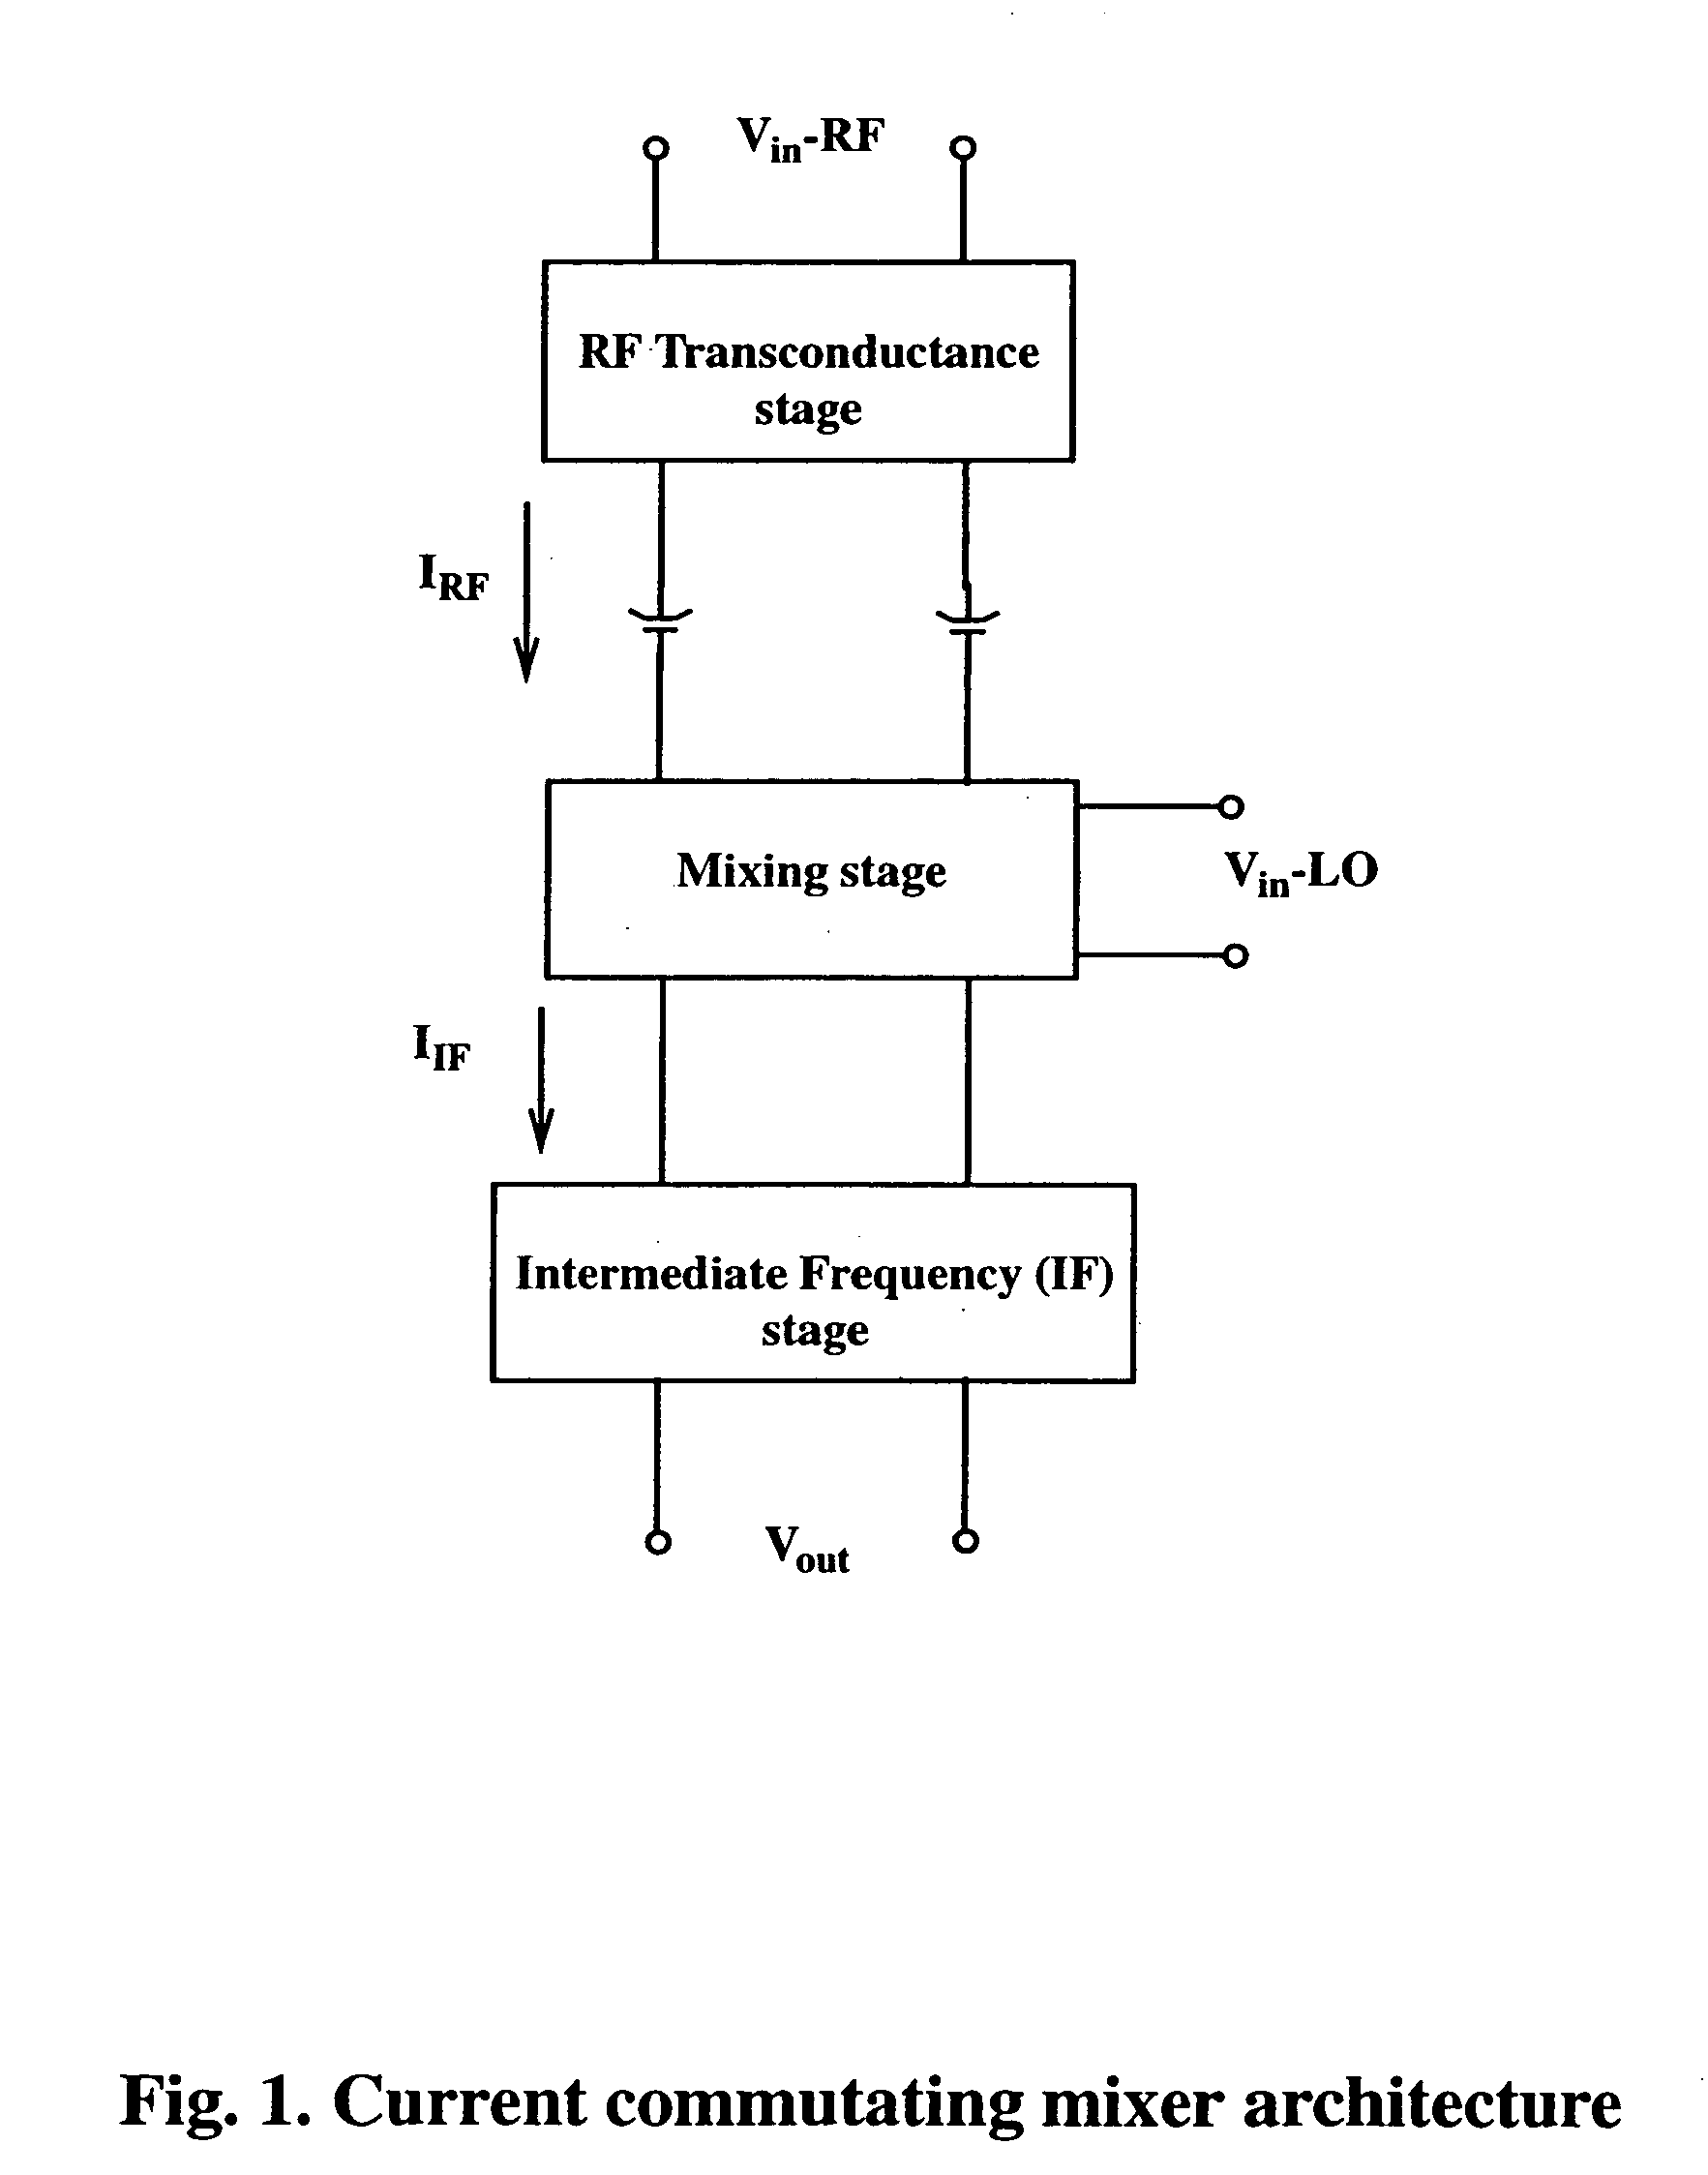 Brevet Us20050124311 Low Voltage Power High Linearity Active Distortion Rf To If Mixers Patent Drawing